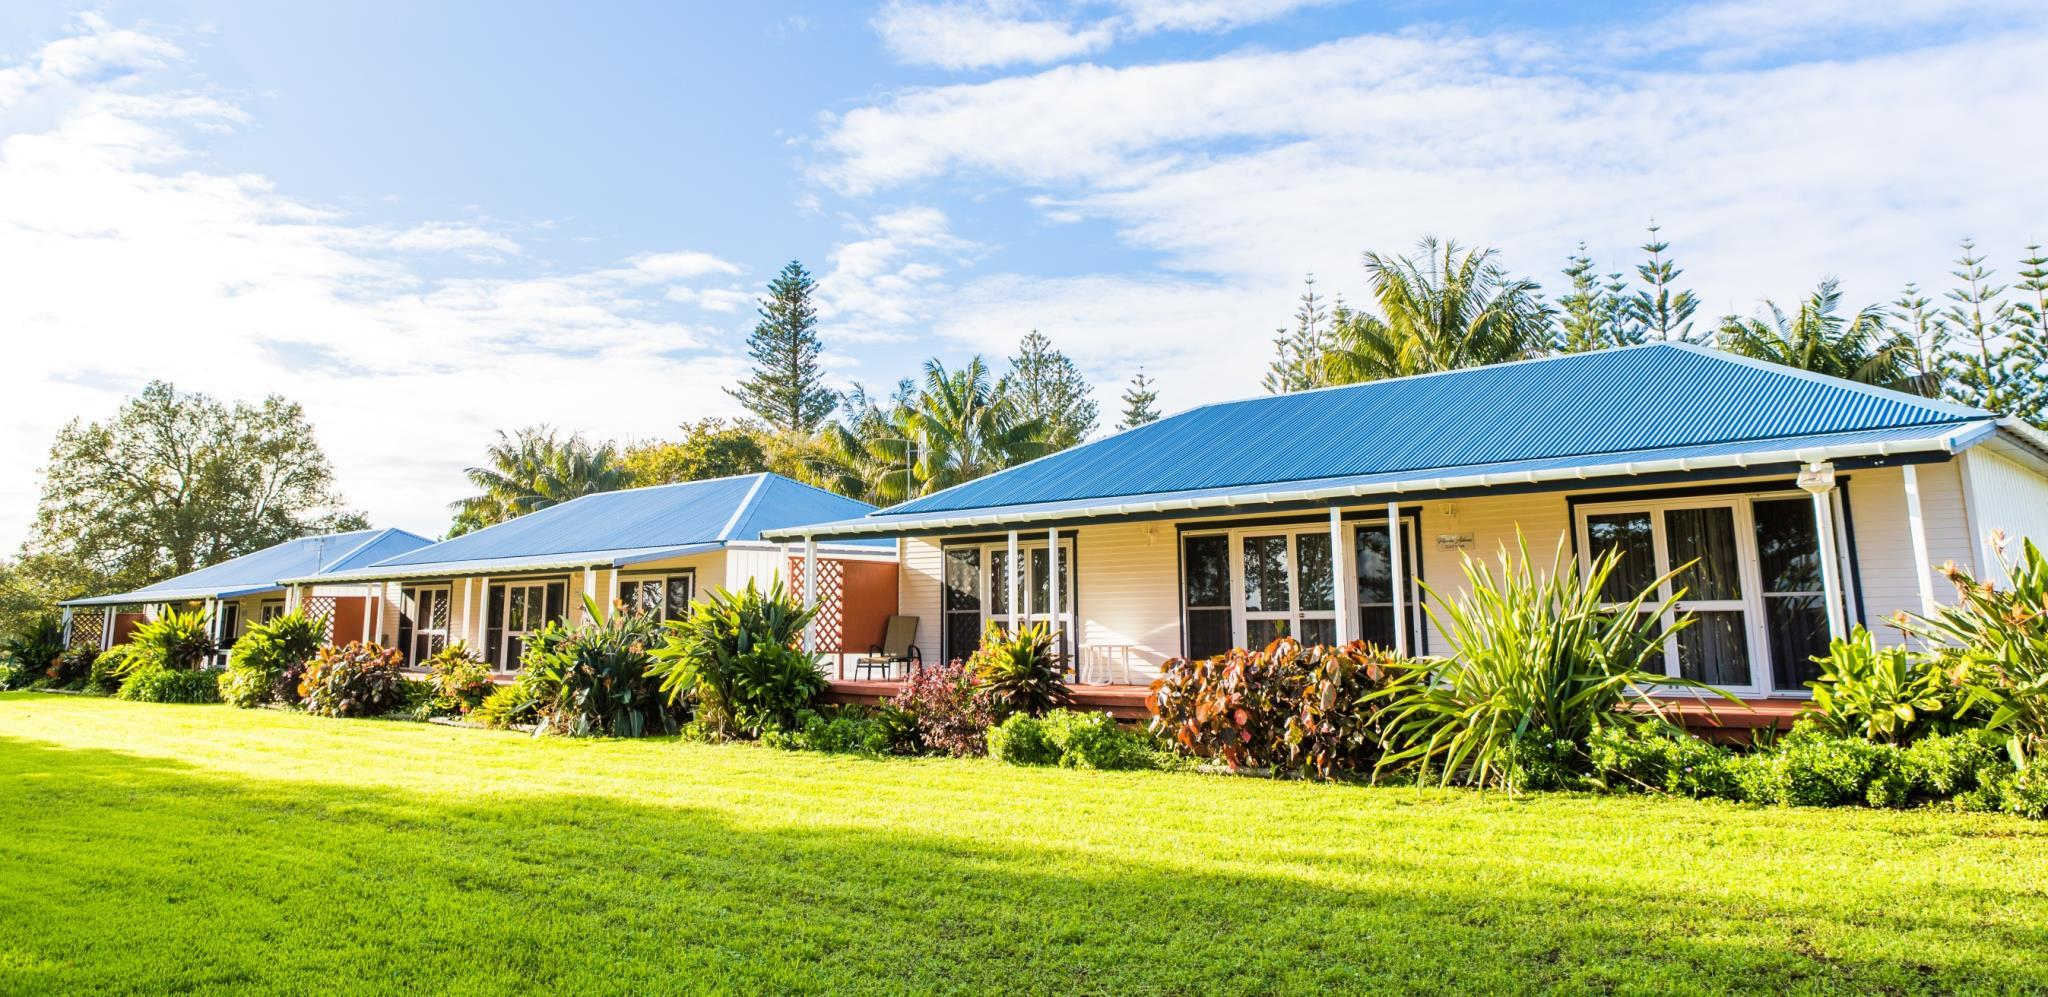 Trade Winds Country Cottages Norfolk Island